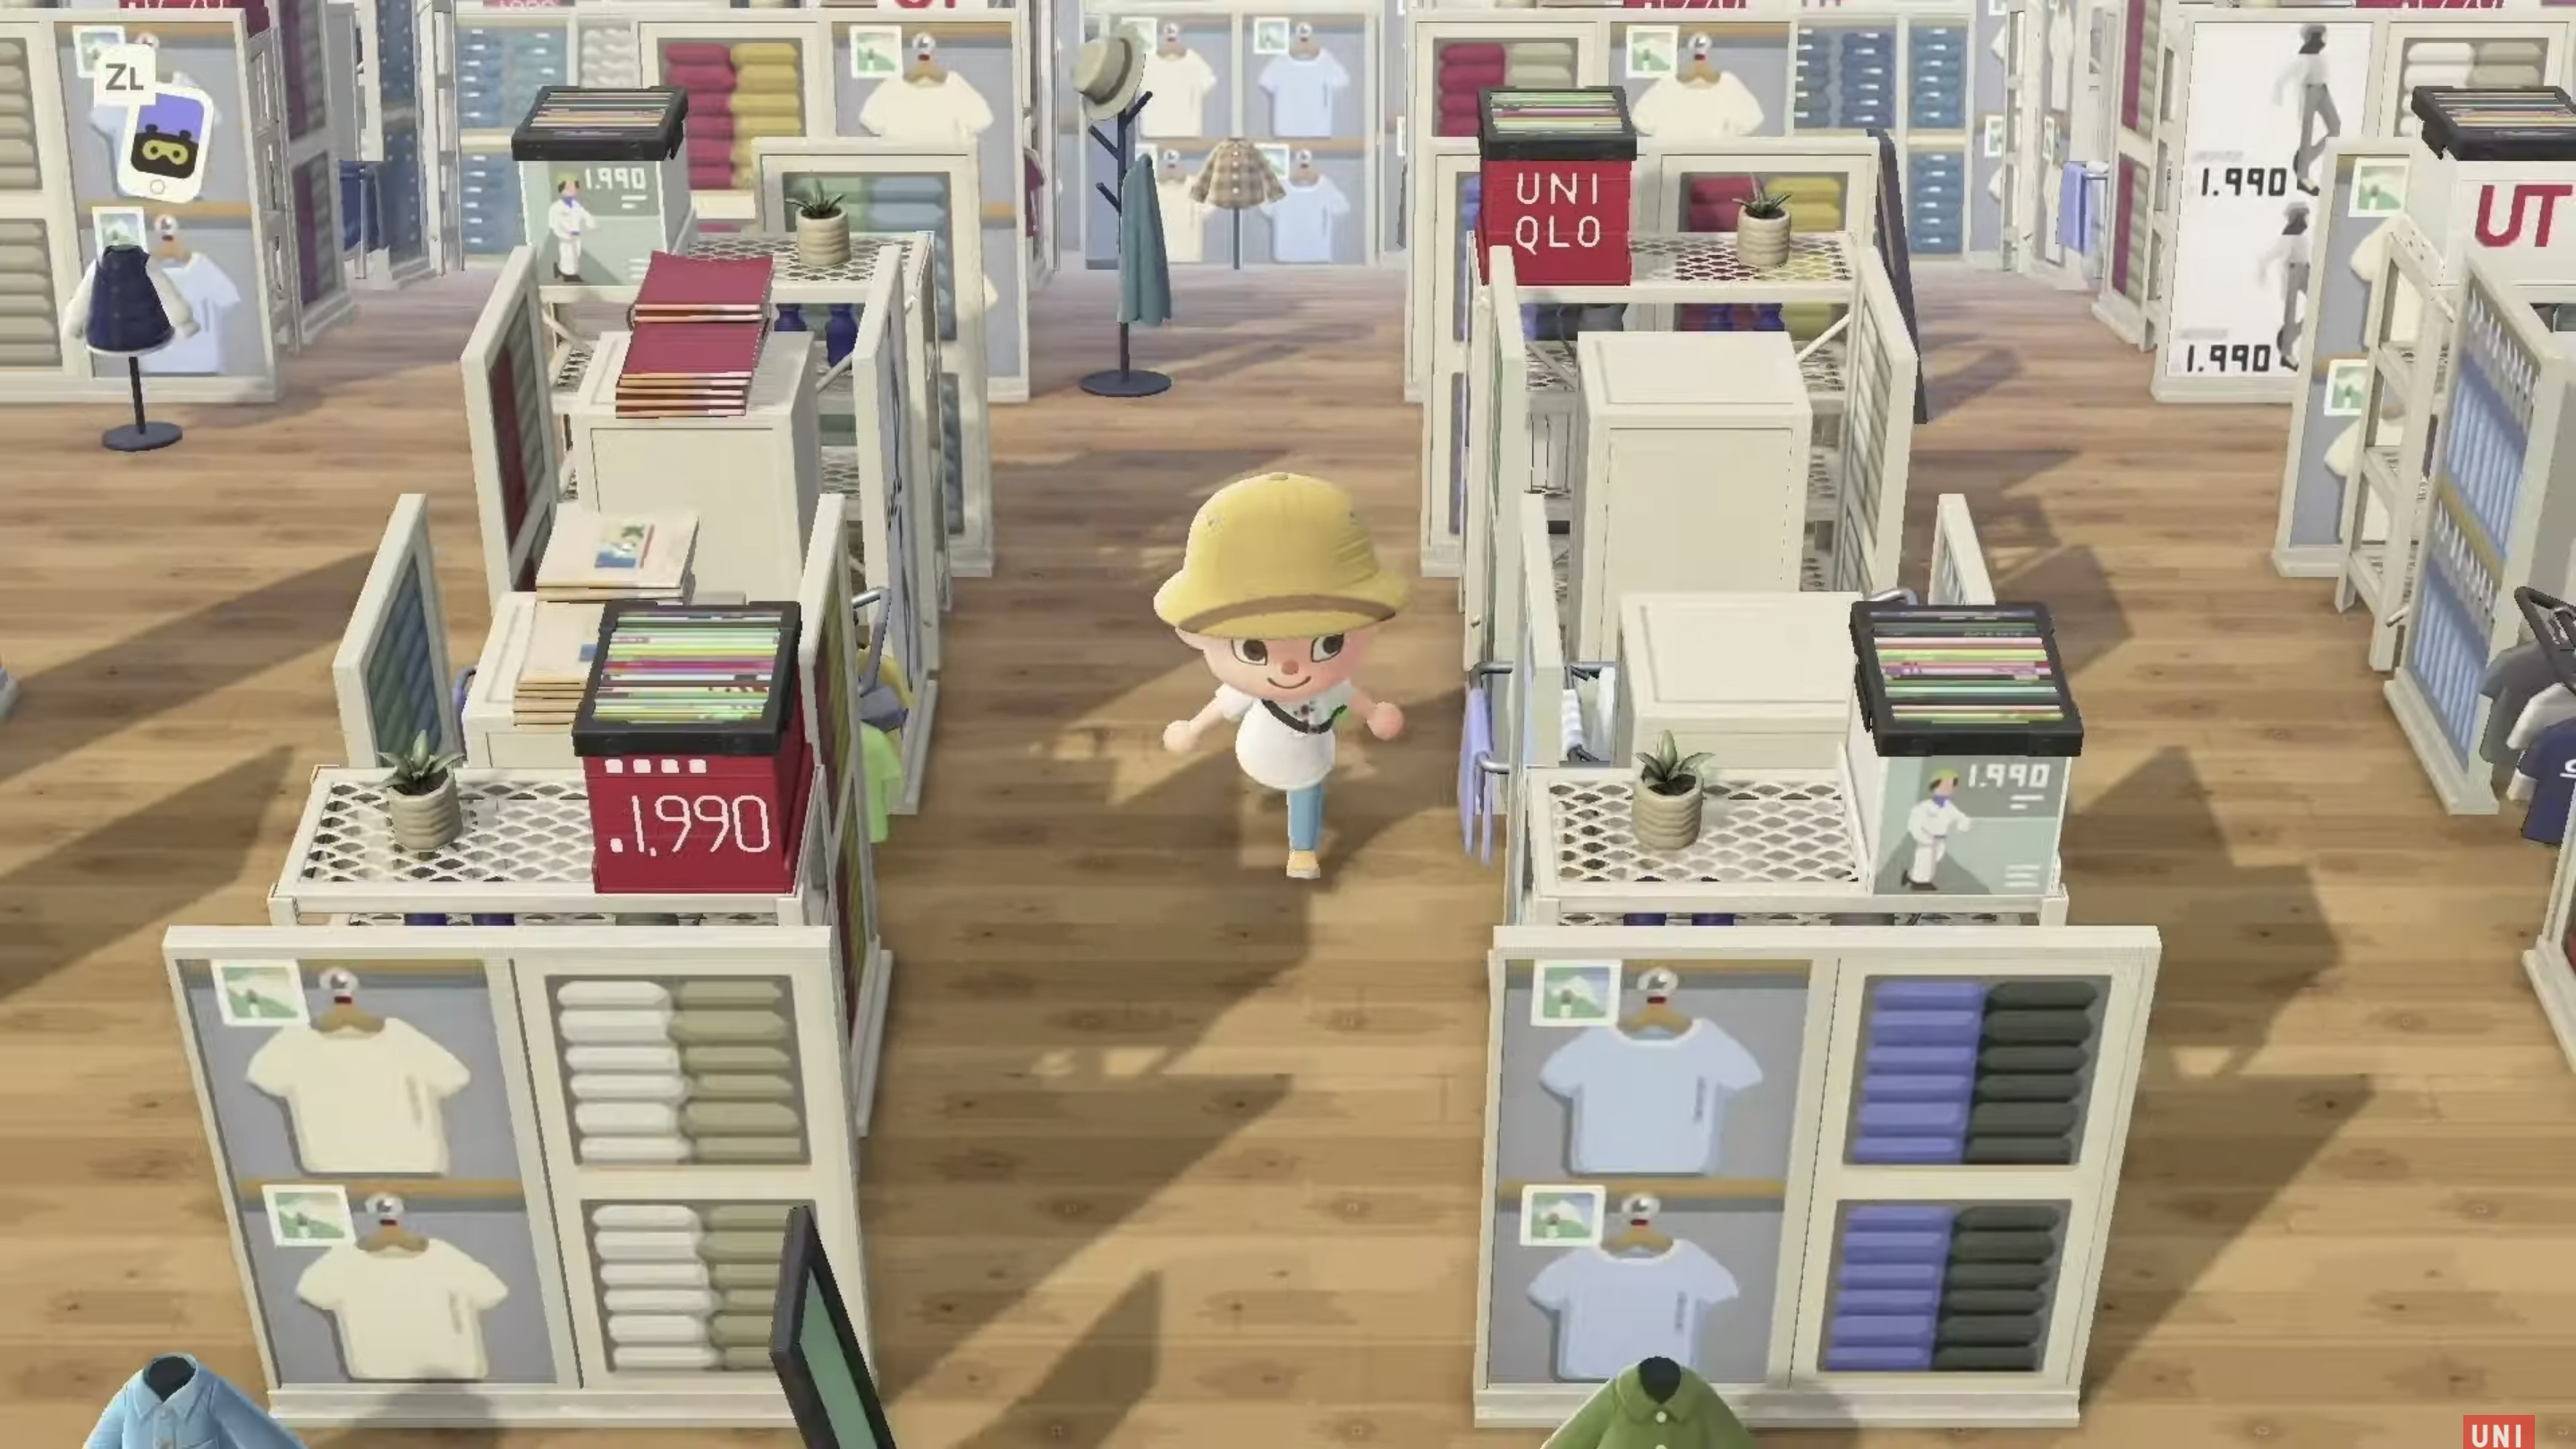 Animal Crossing: New Horizons x UT at UNQLO